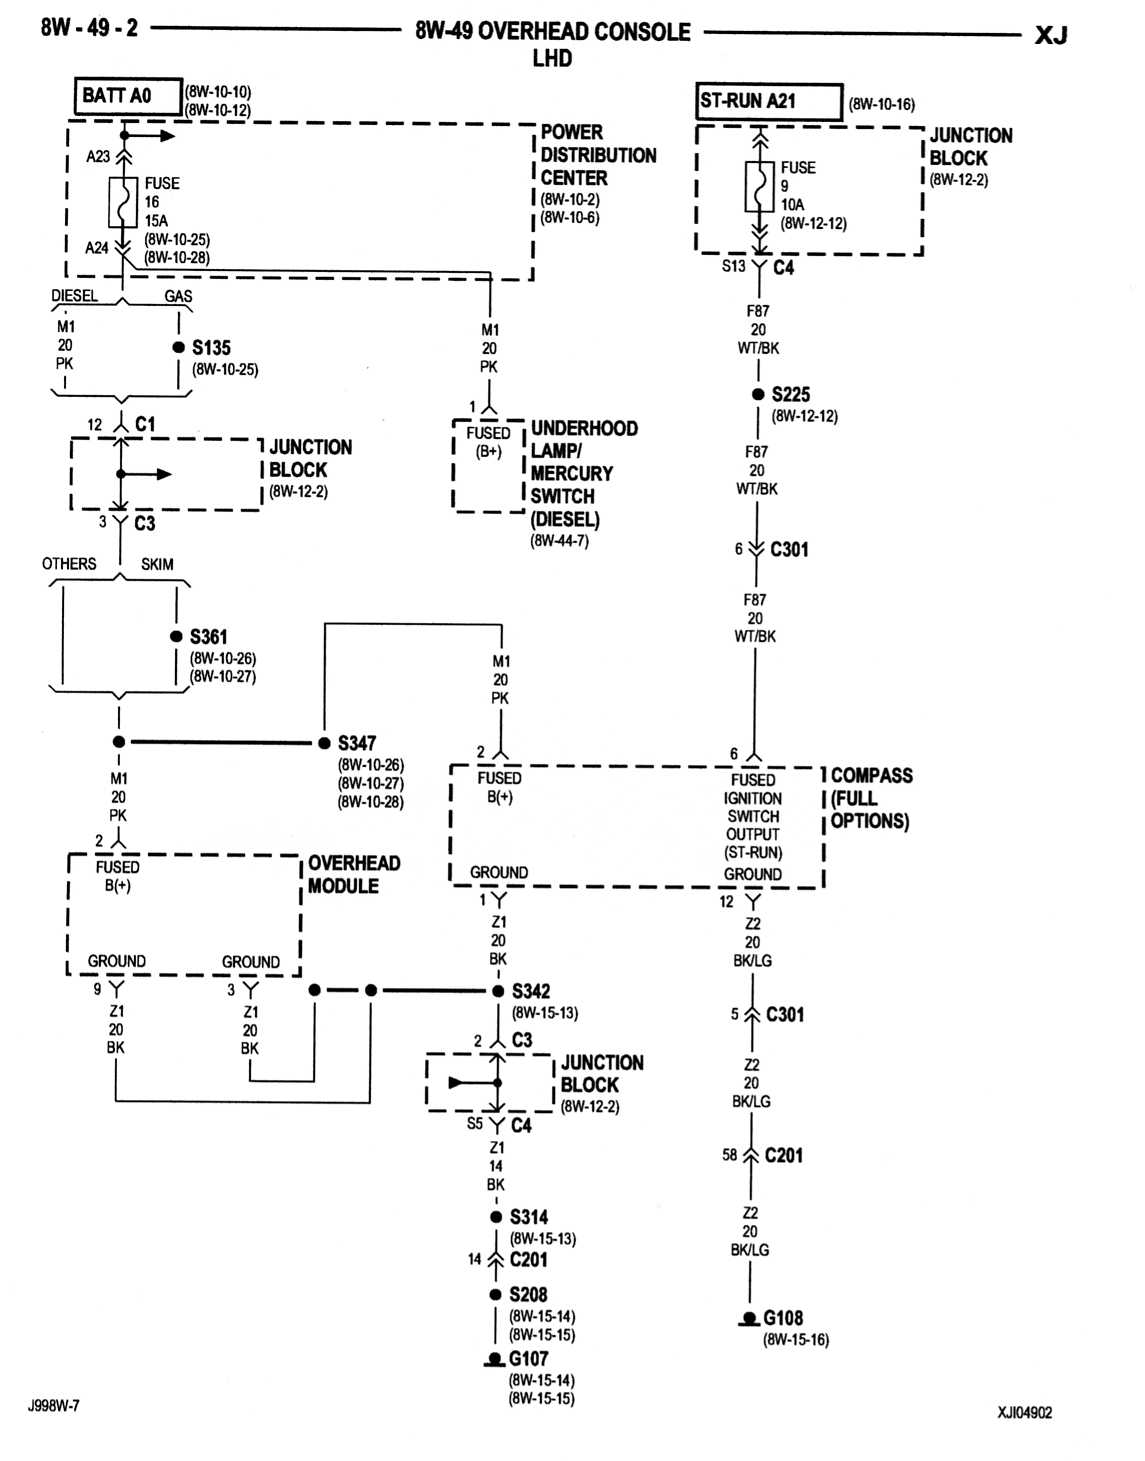 328400d1501259387 keyless entry wiring anyone know color code 99overheadmoduleconsolediagram1?resize\\\\\\=665%2C849\\\\\\&ssl\\\\\\=1 100 [ notifier intelligent control panel slc wiring manual 7 Layer OSI Model Diagram at reclaimingppi.co